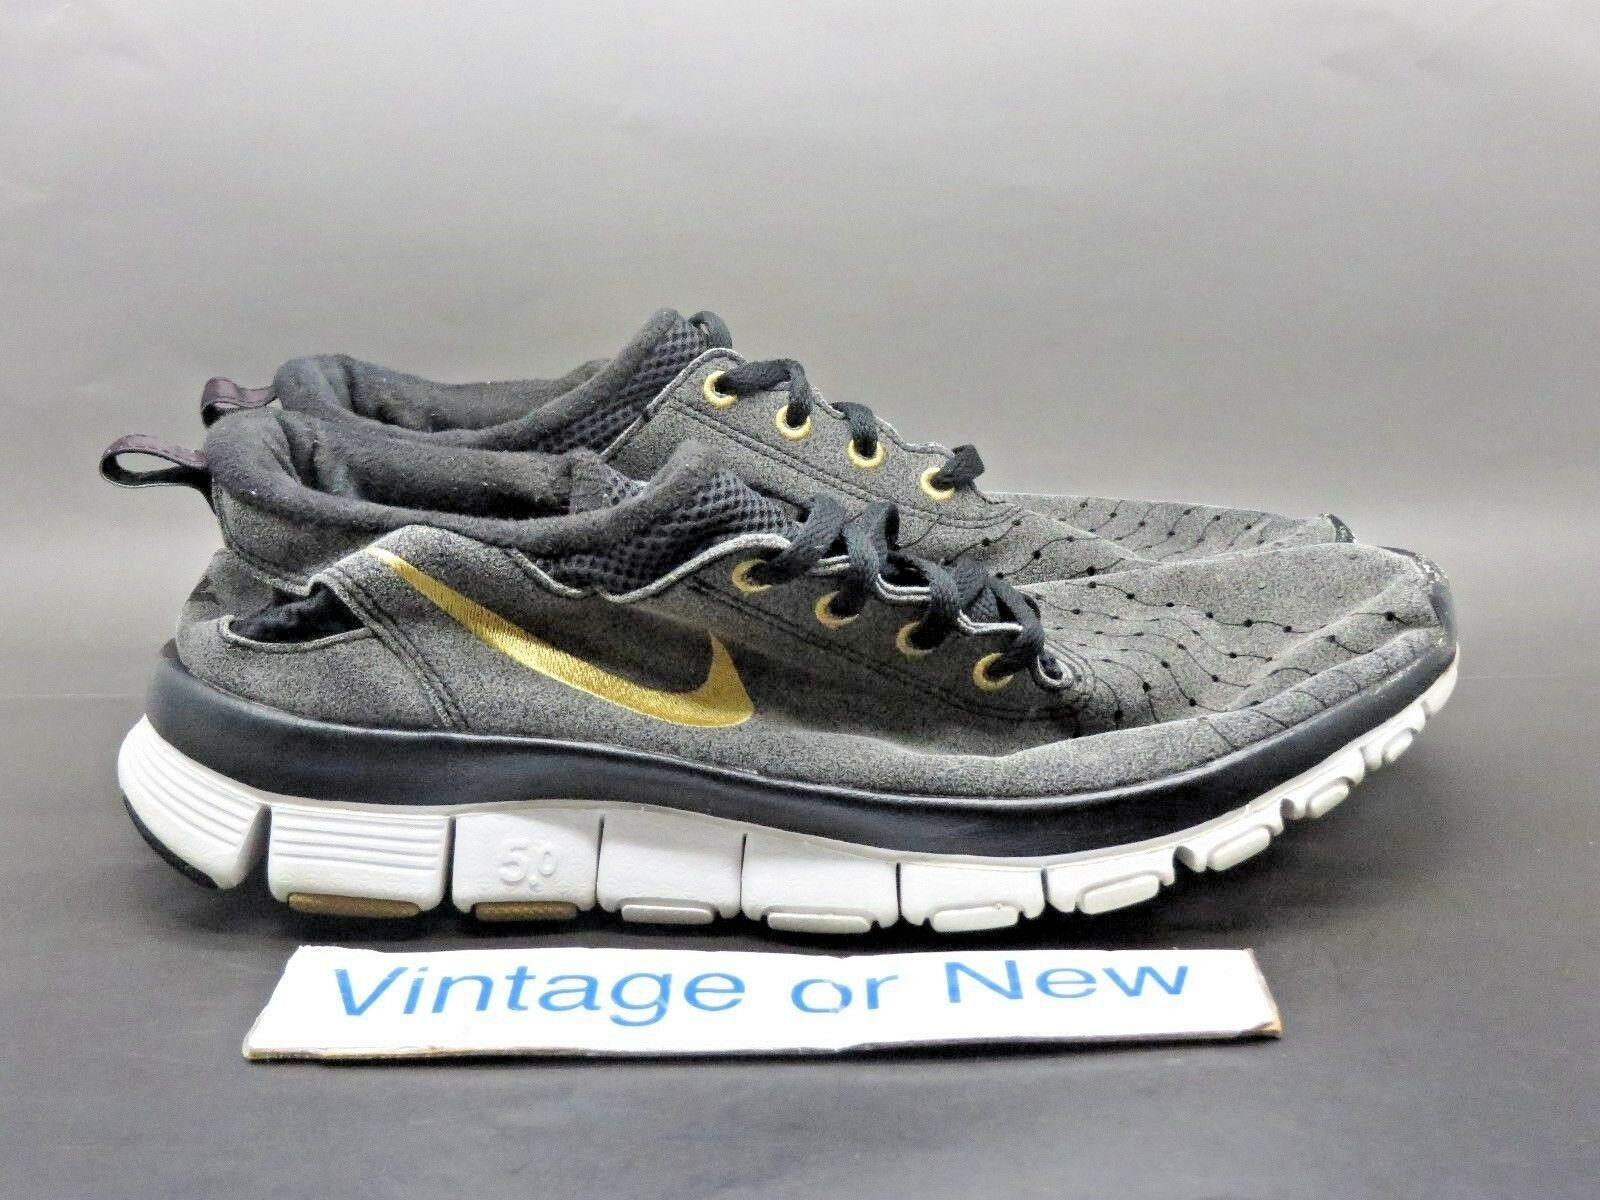 Women's VTG Nike Free 5.0 V2 Dark Grey Black Gold Running Shoes 2018 Price reduction The latest discount shoes for men and women